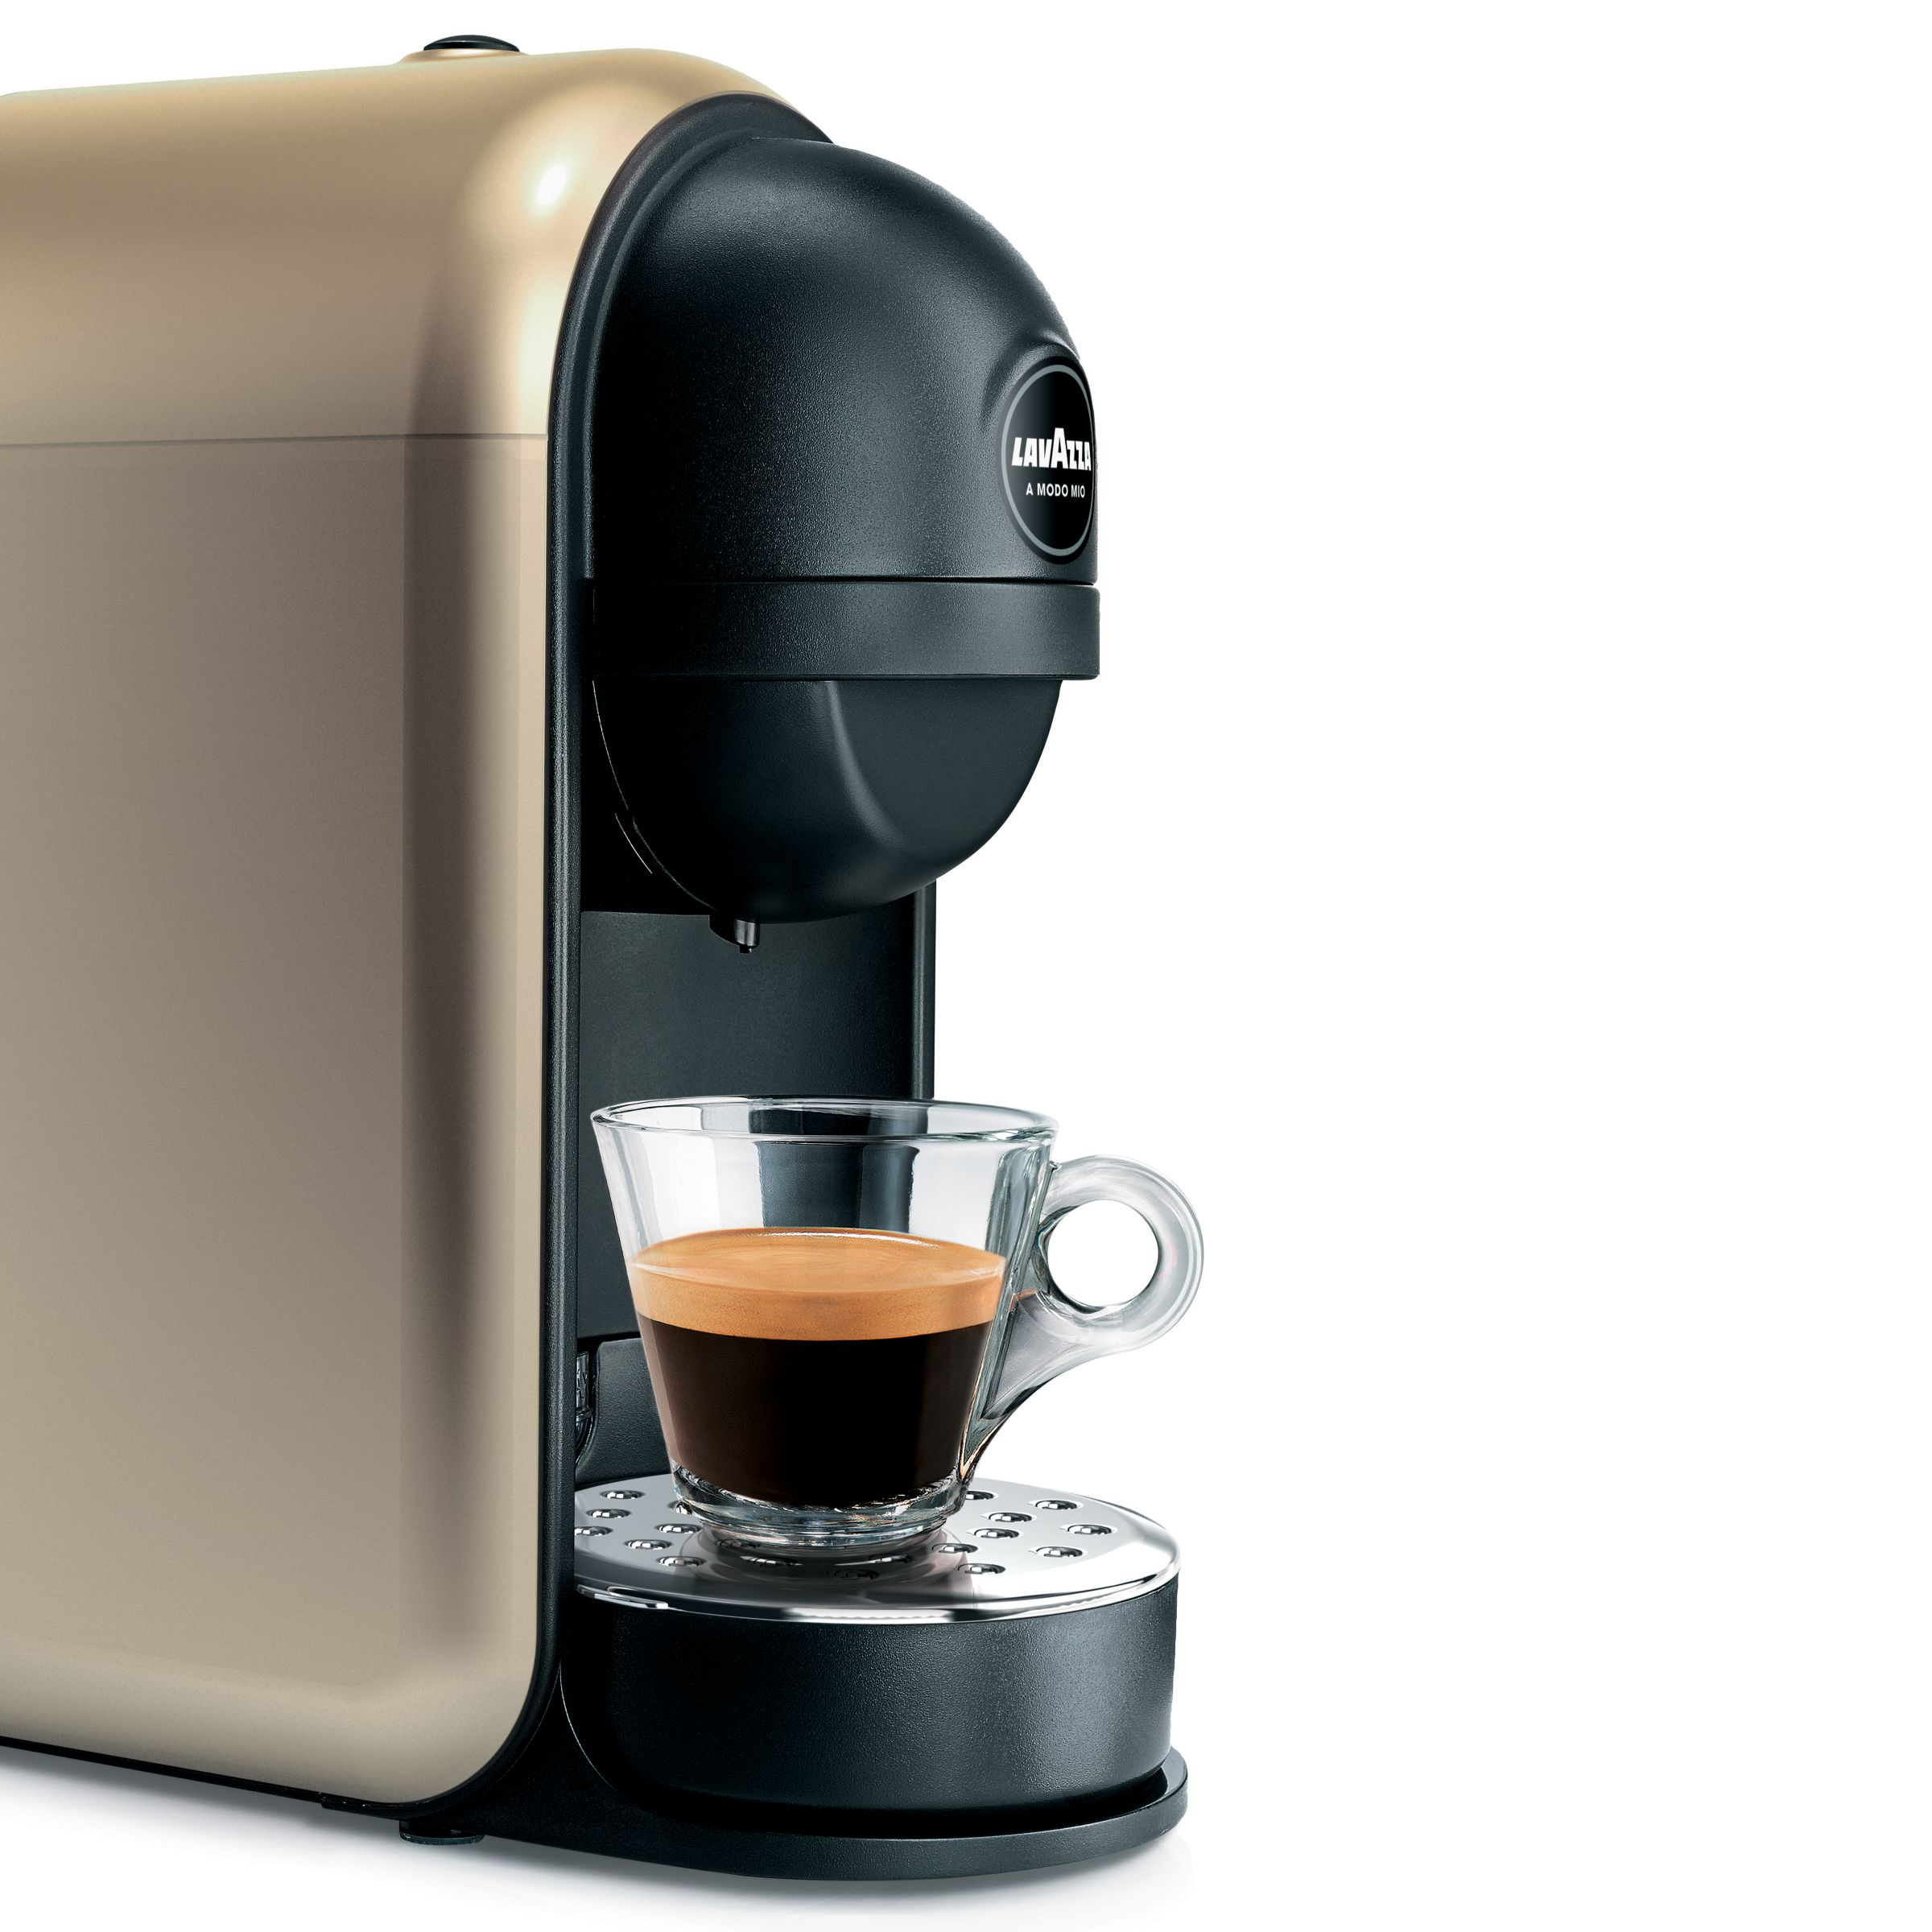 How To Use Lavazza Coffee Maker : Buy Lavazza A Modo Mio Min? Coffee Maker John Lewis